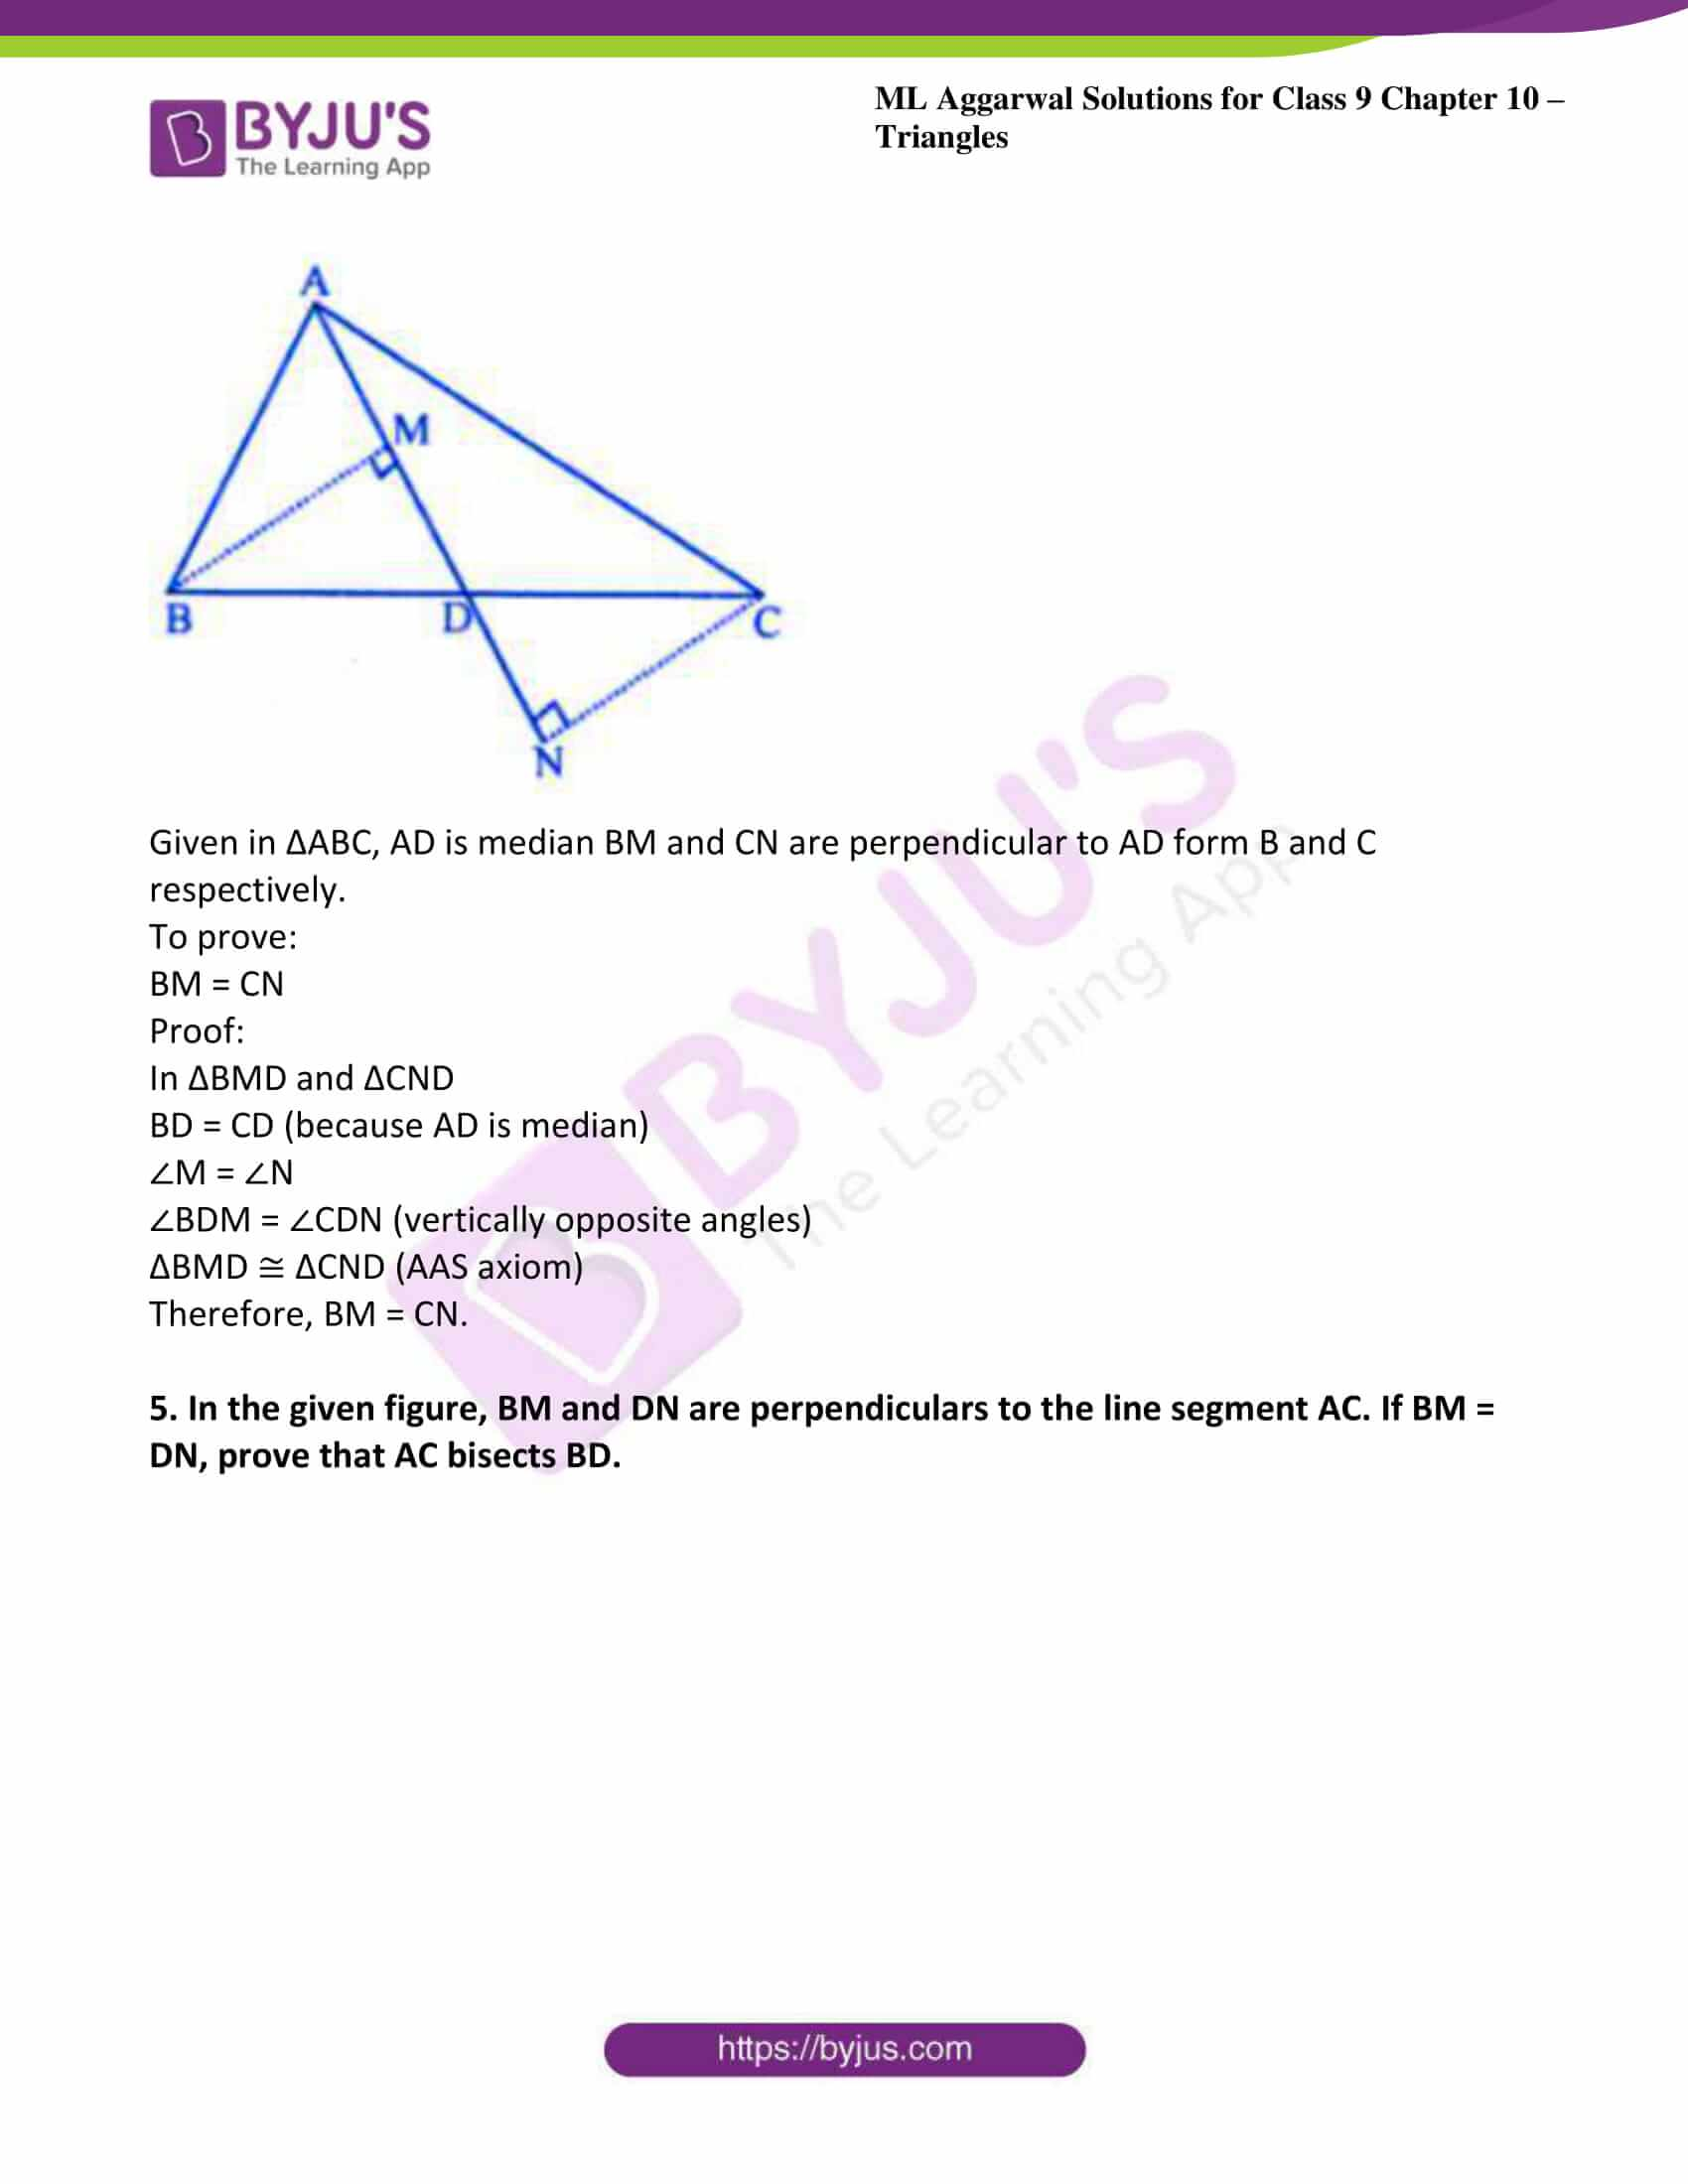 ml aggarwal solutions for class 9 maths chapter 10 11